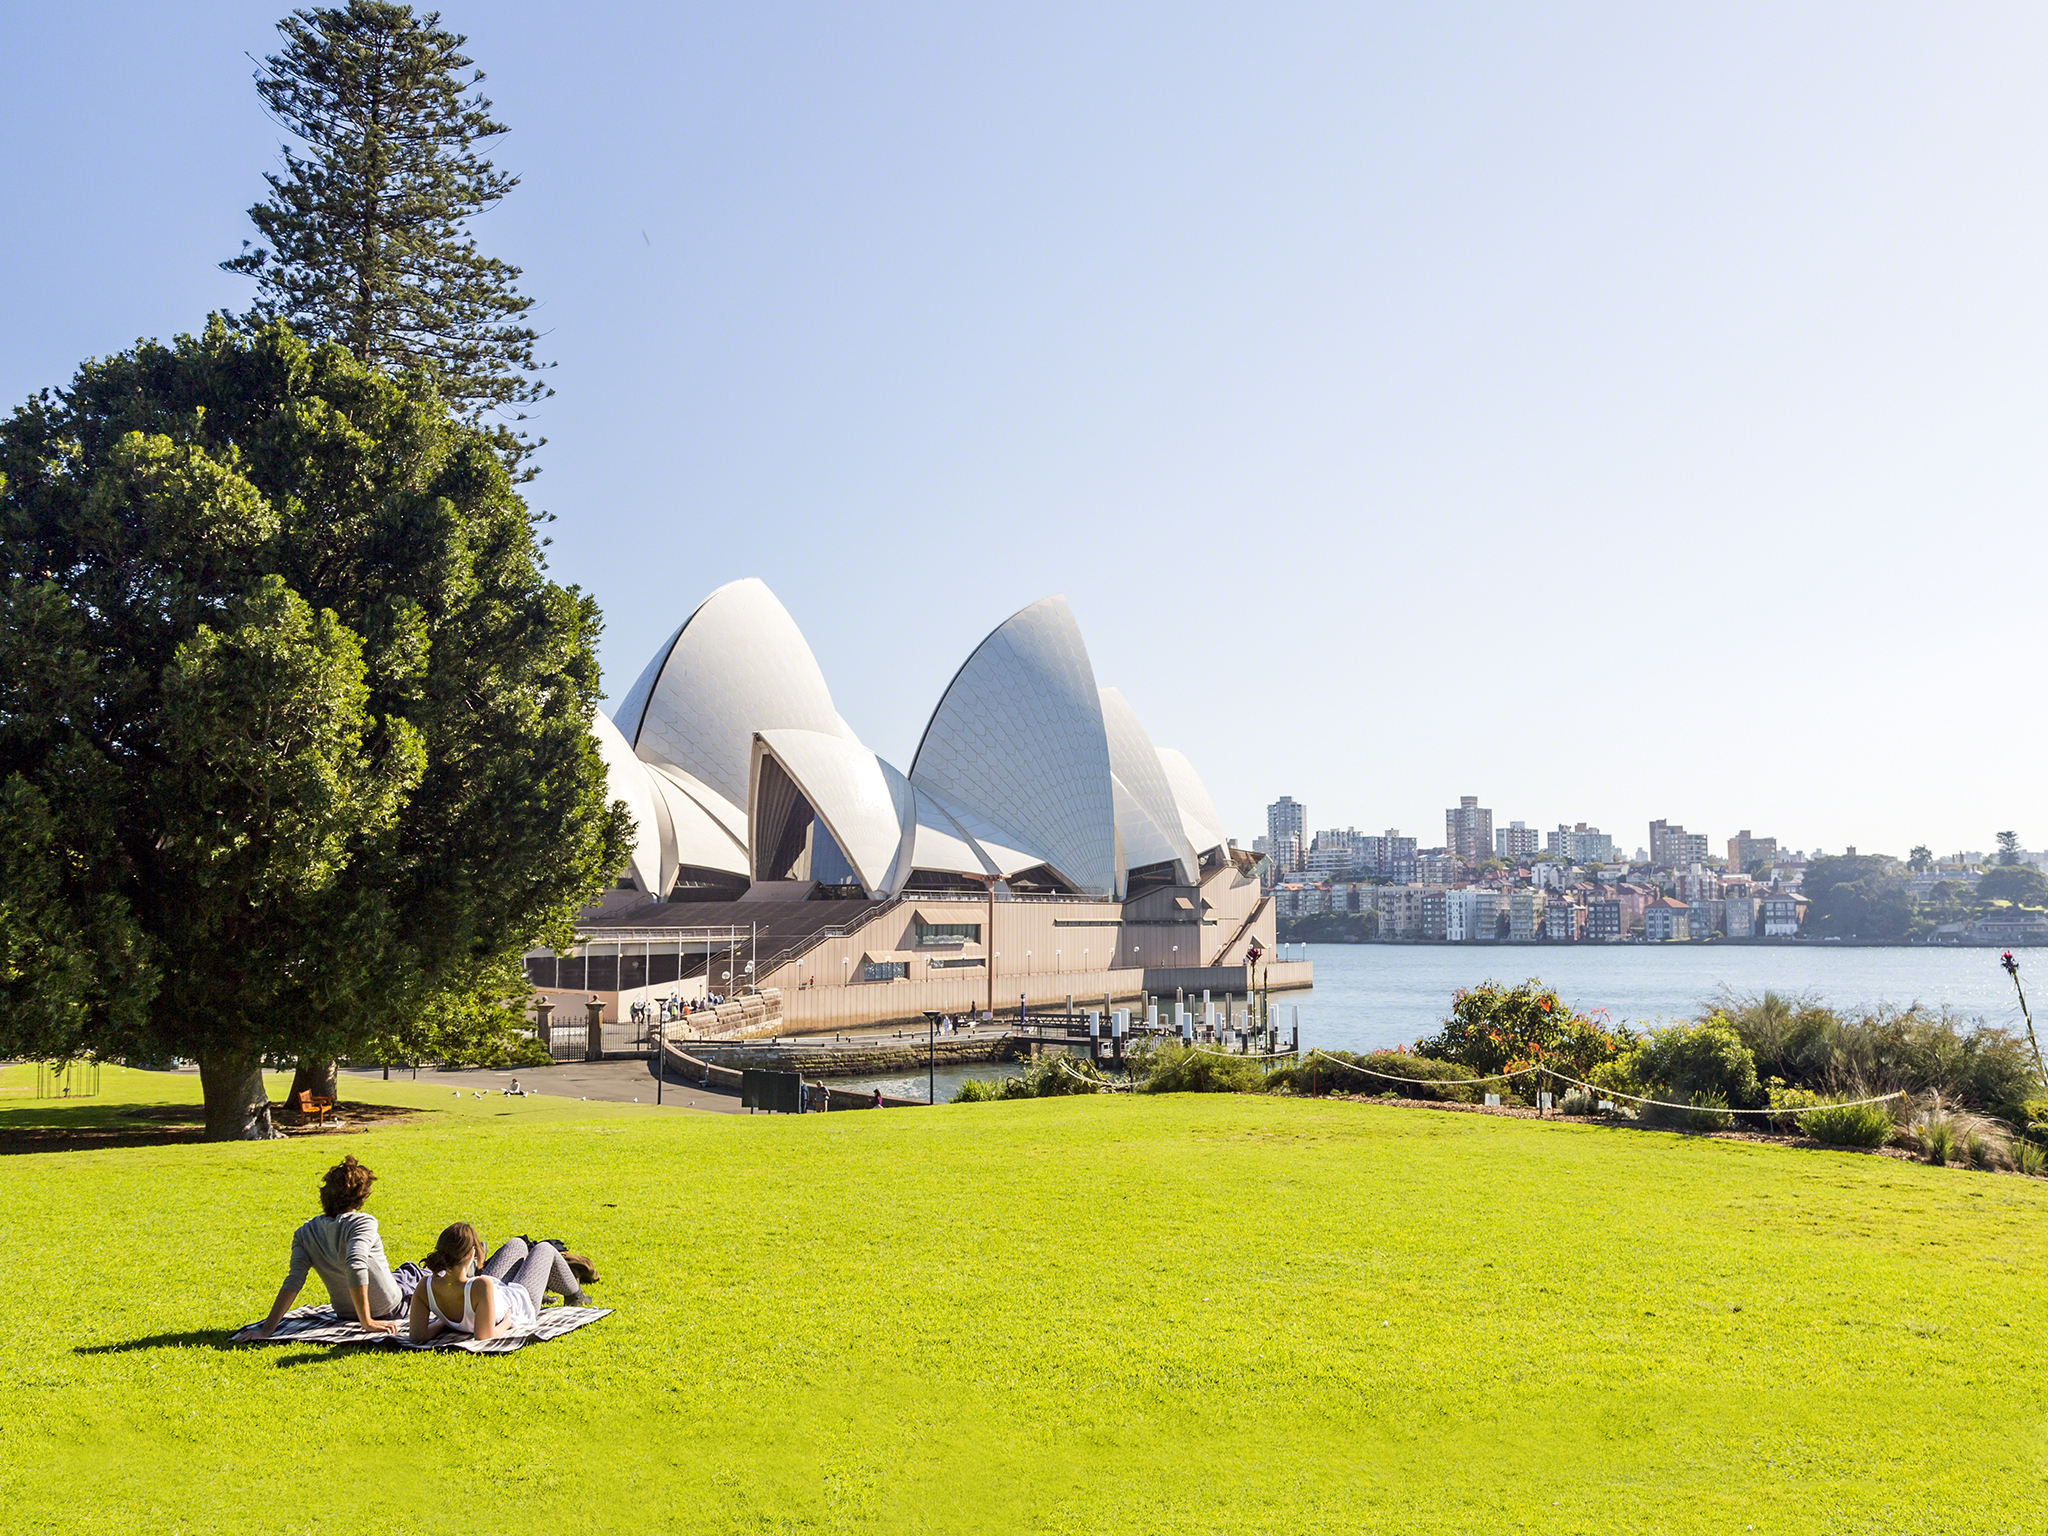 Summer events in Sydney